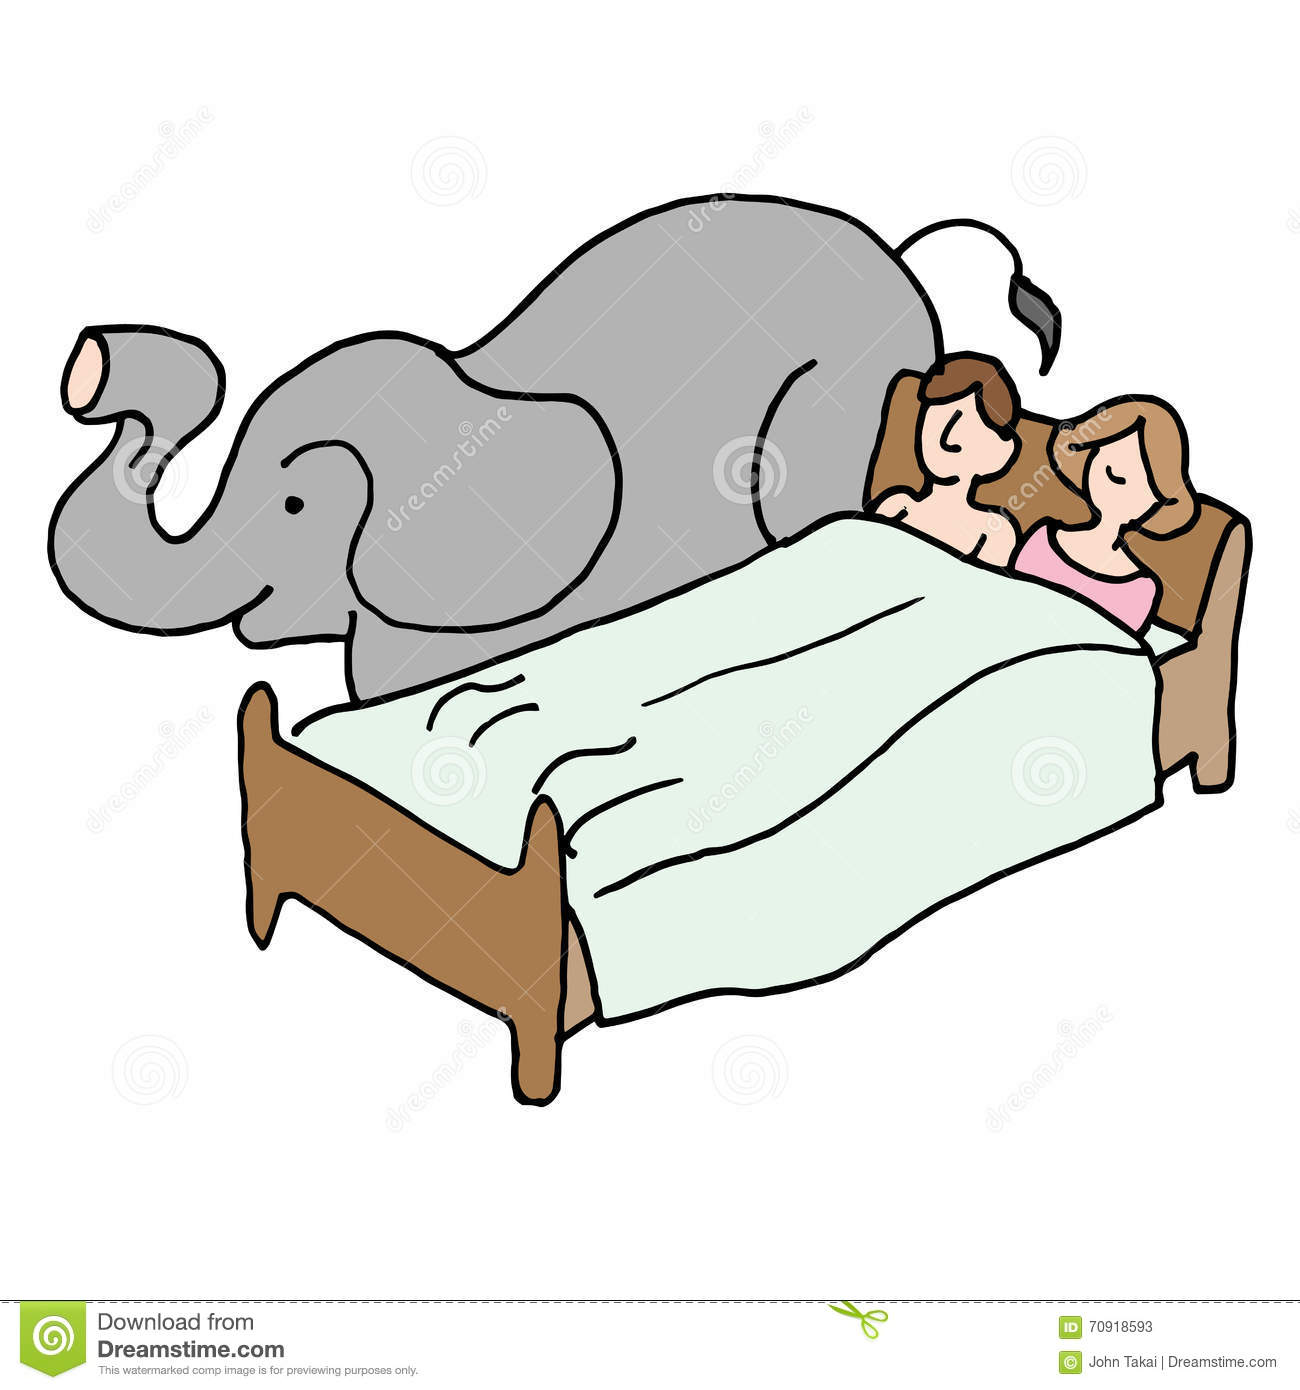 bedroom couple elephant in the room stock vector illustration of rh dreamstime com Ignore the Elephant in Room Clip Art Elephant in the Middle of the Room